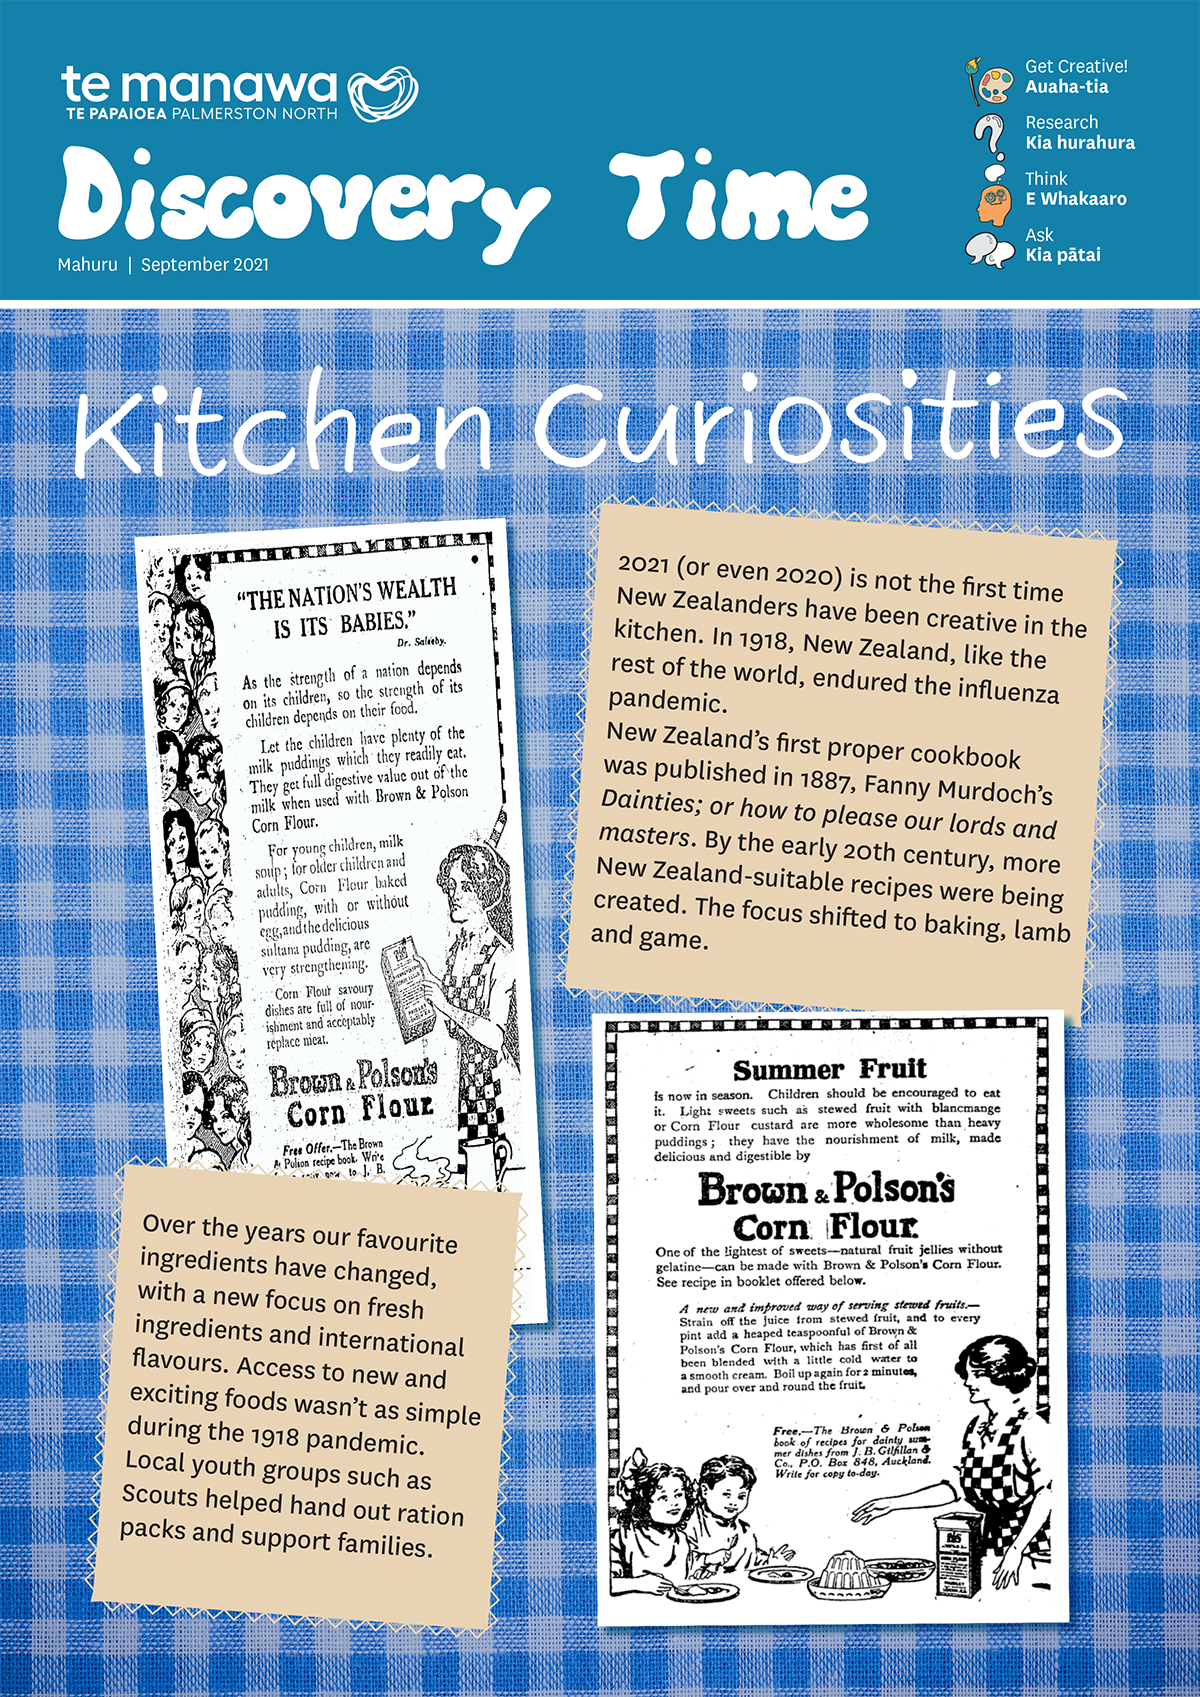 https://www.temanawa.co.nz/wp-content/uploads/2021/10/Discovery-Time-Kitchen-Curiosities-v1-1.png